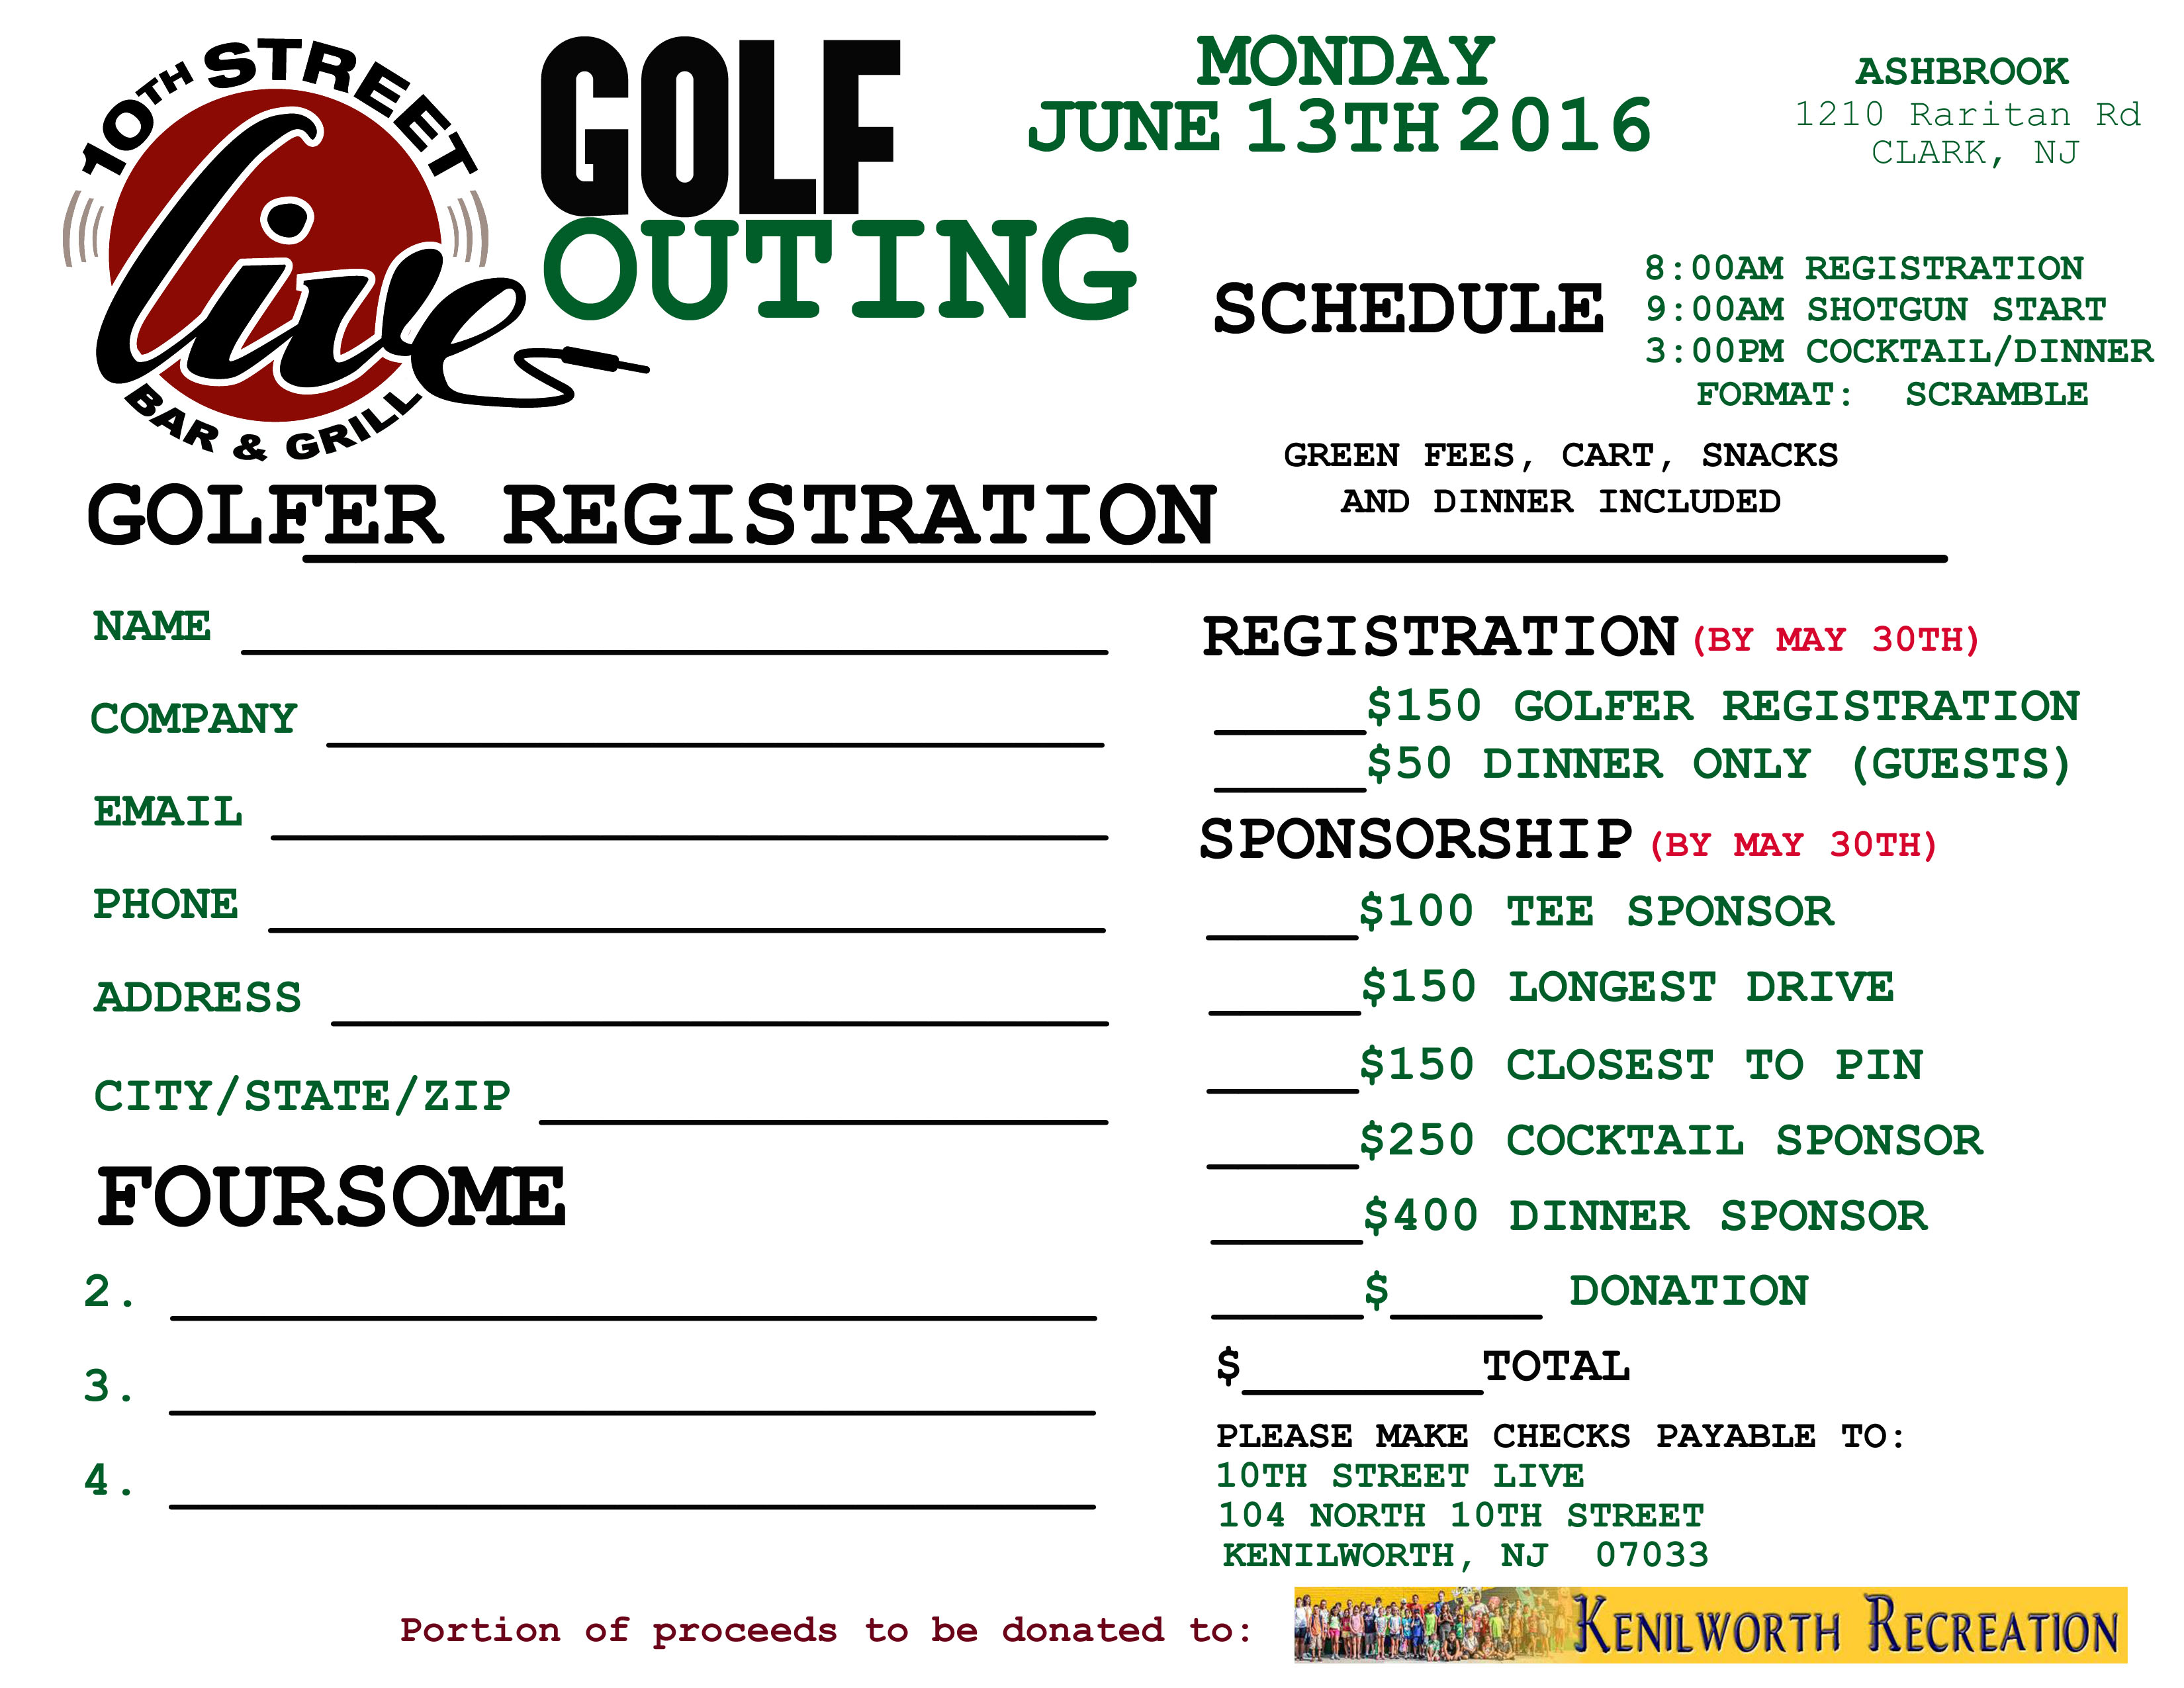 8707b72240b587f15324_85f6bffc11de25c748c7_10th_St_Live_-_Golf_Outing.jpg